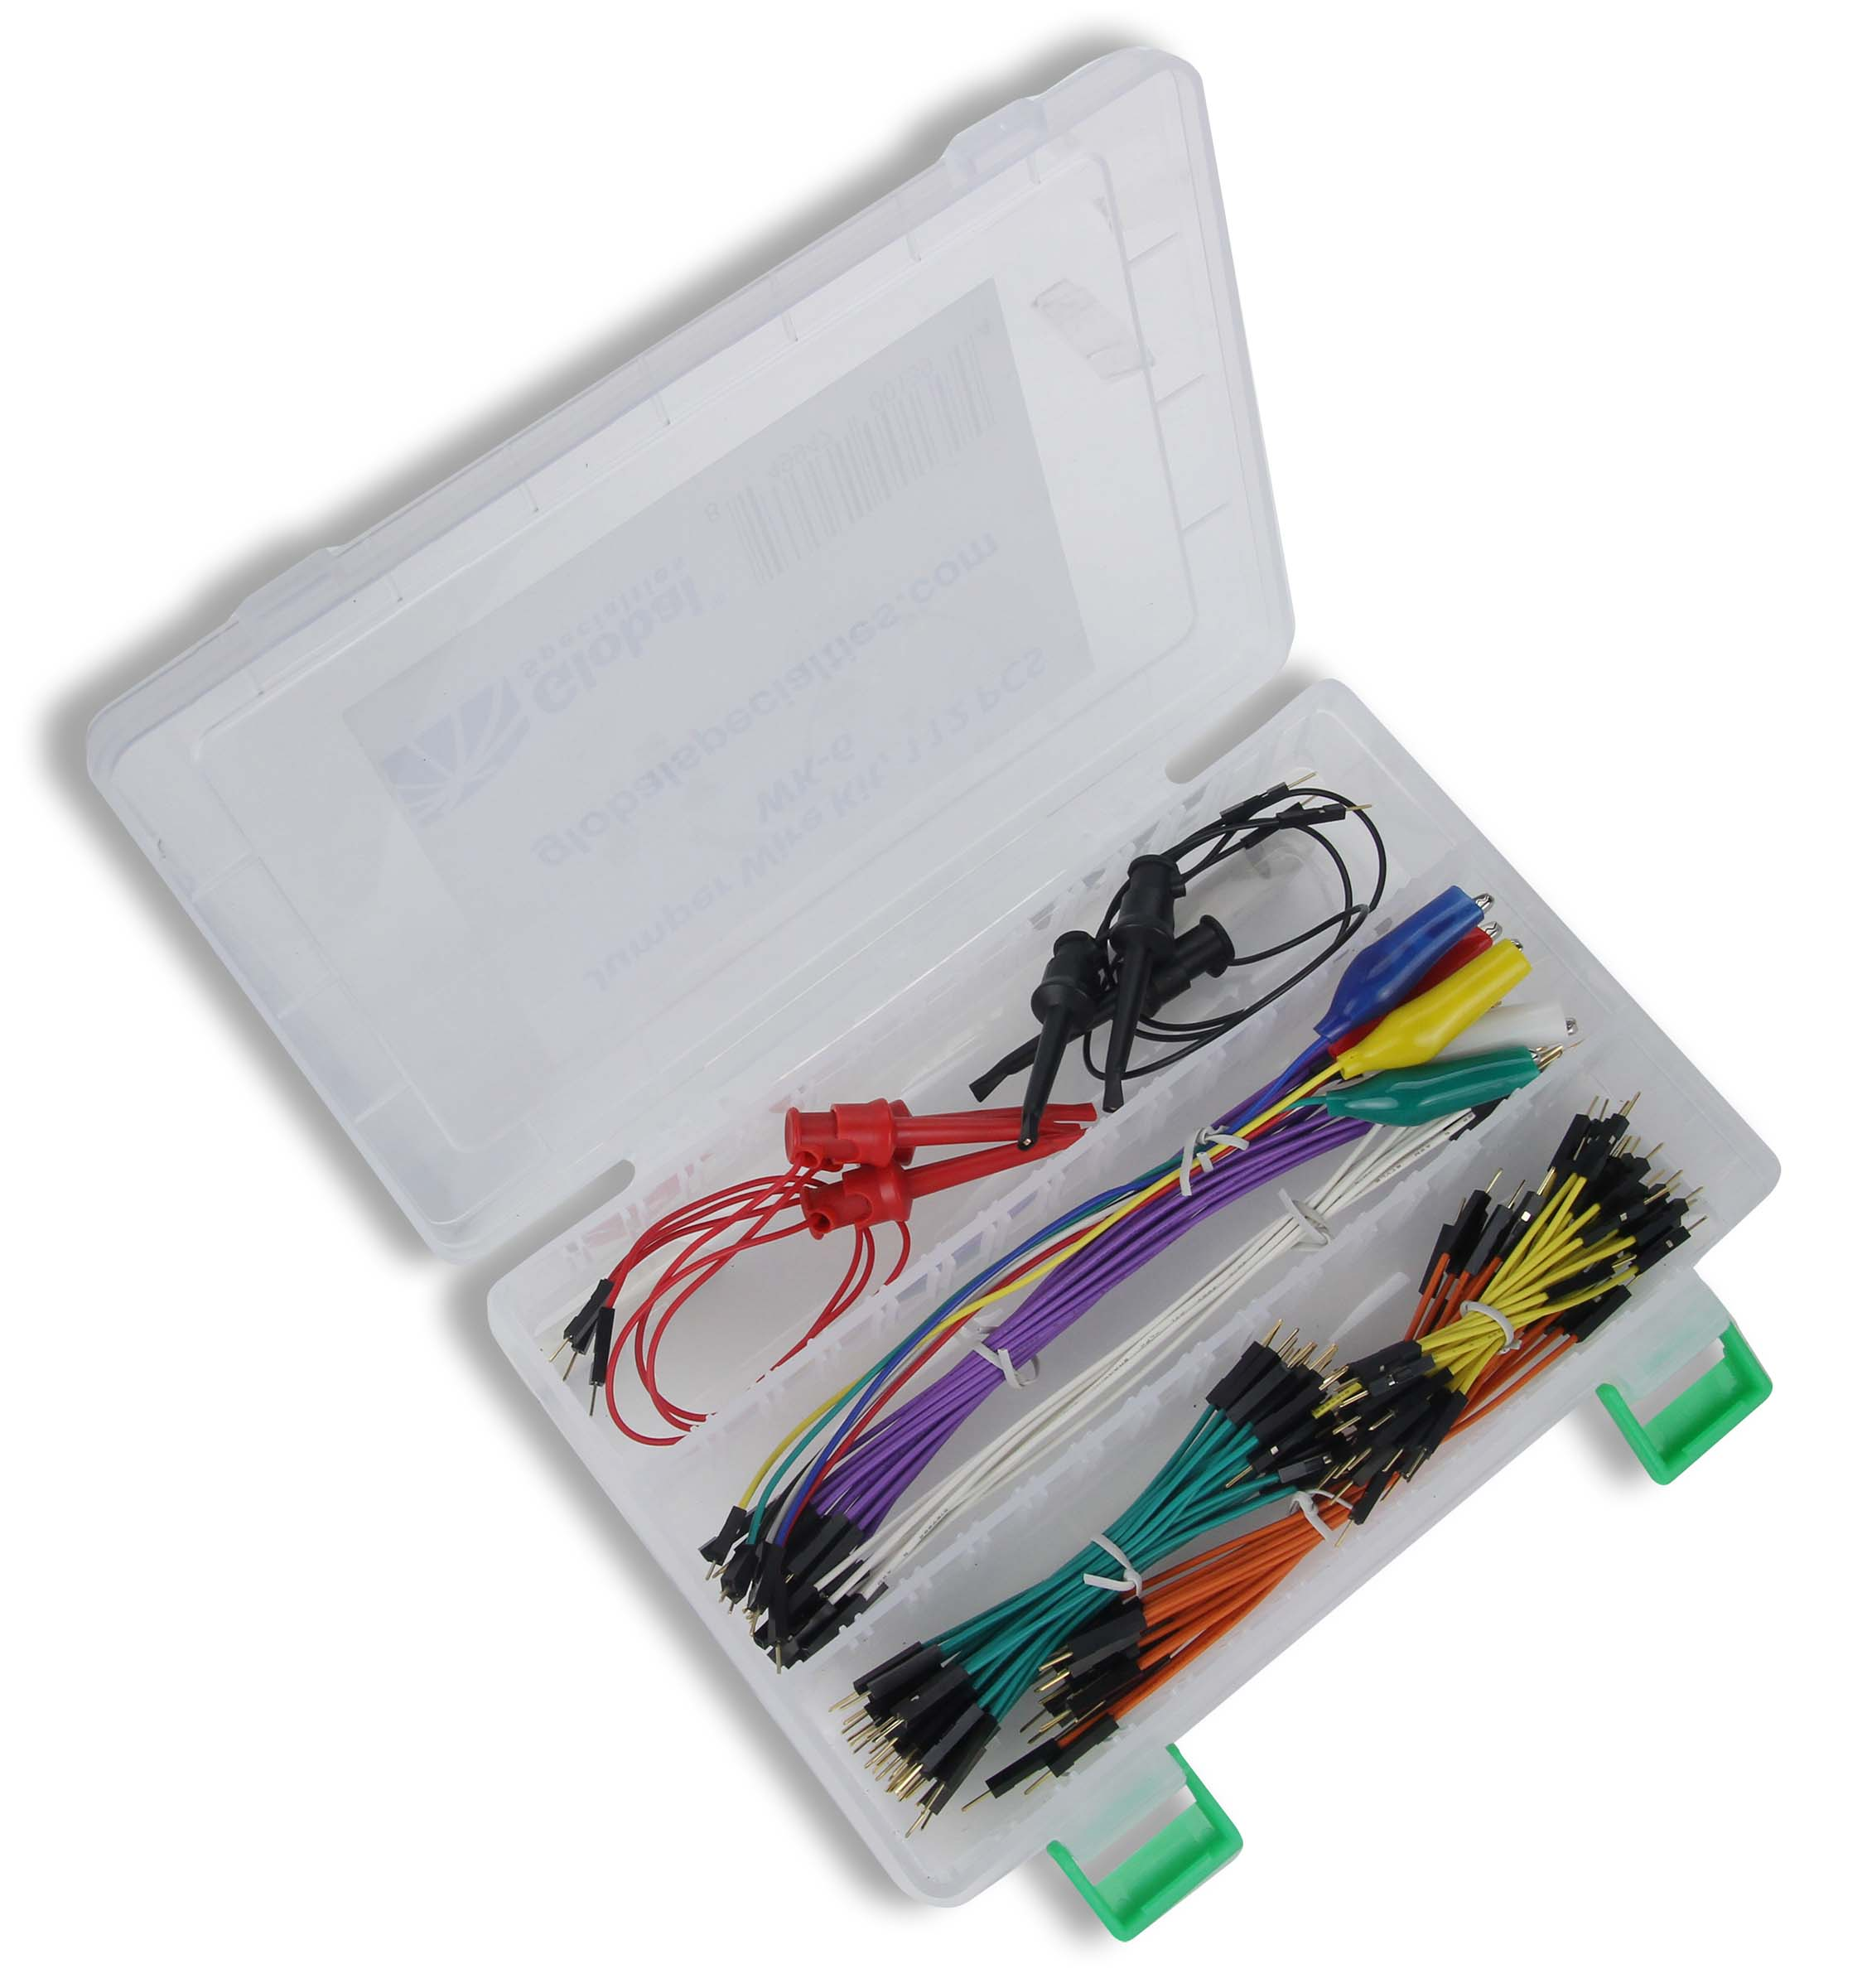 Global Specialties WK-6 Jumper Wire Kit, 112 Pcs Photo